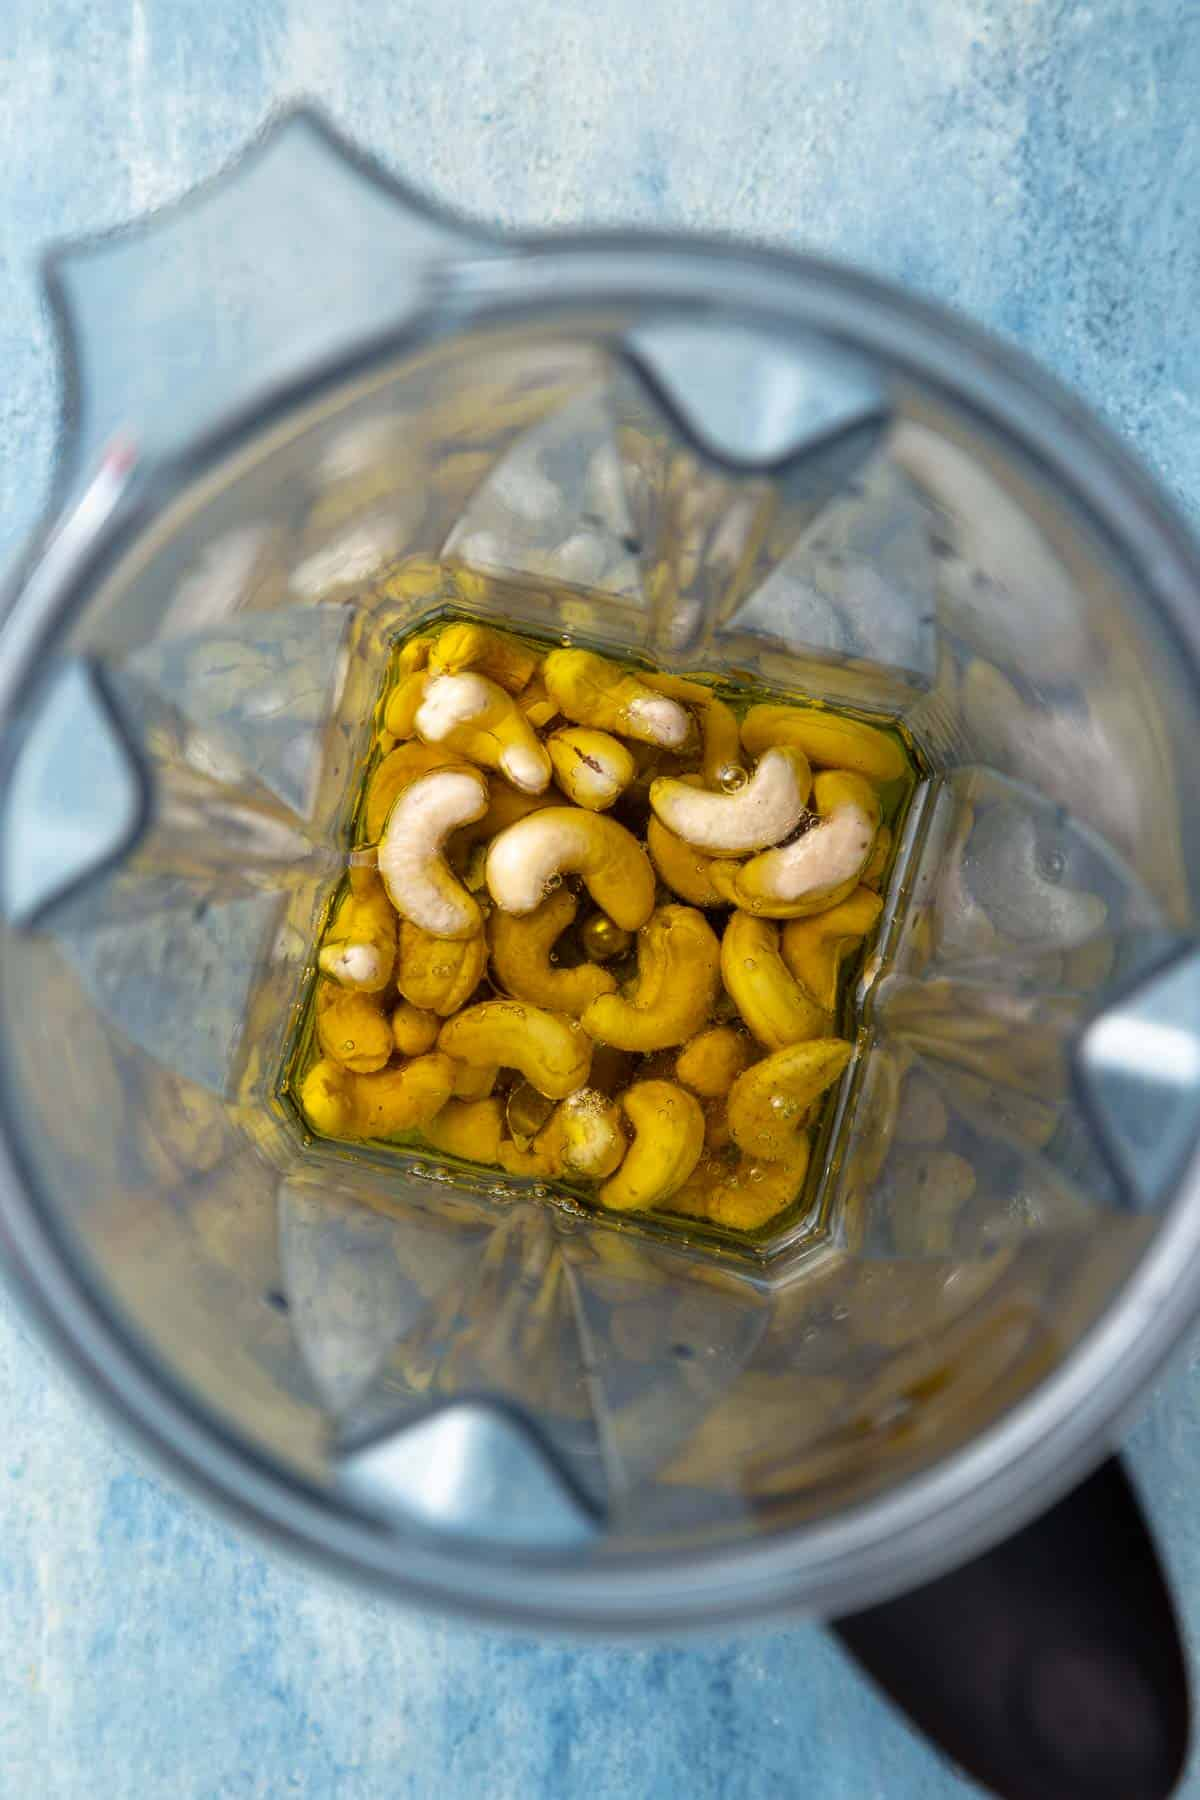 Cashews and oil in a blender